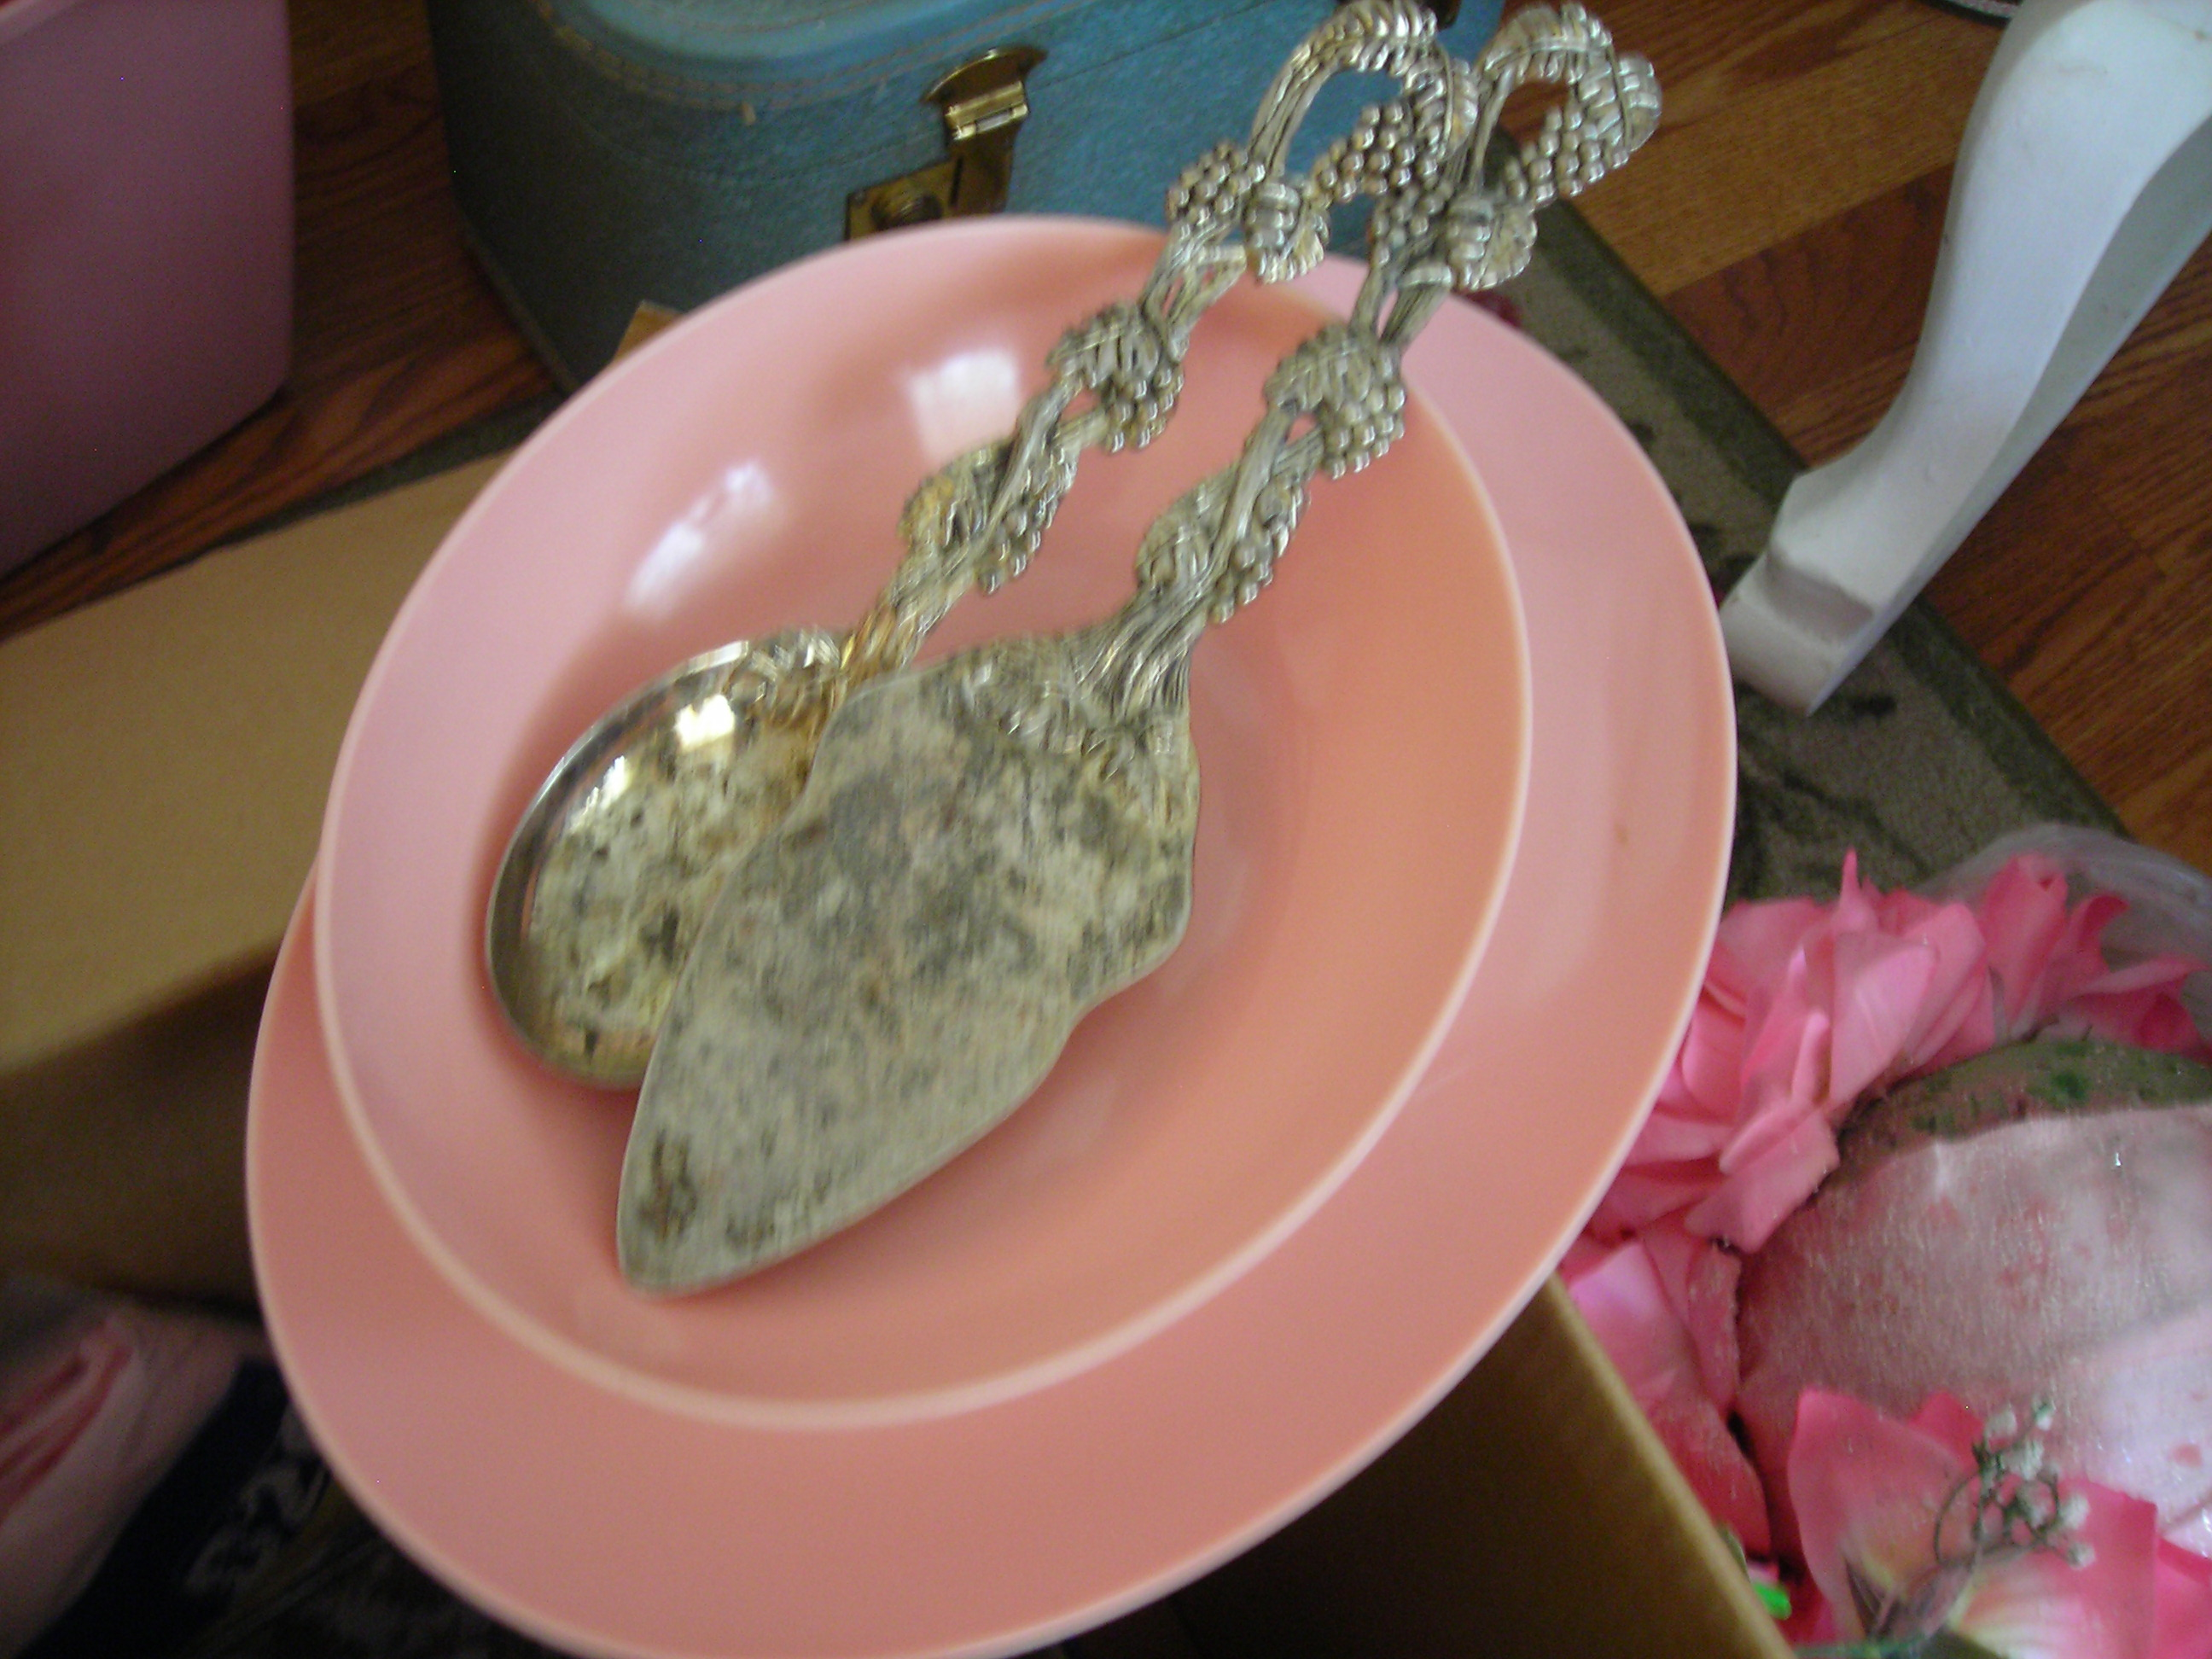 pair of vintage serving utensils and a grrreat pink melmac-ish bowl and platter